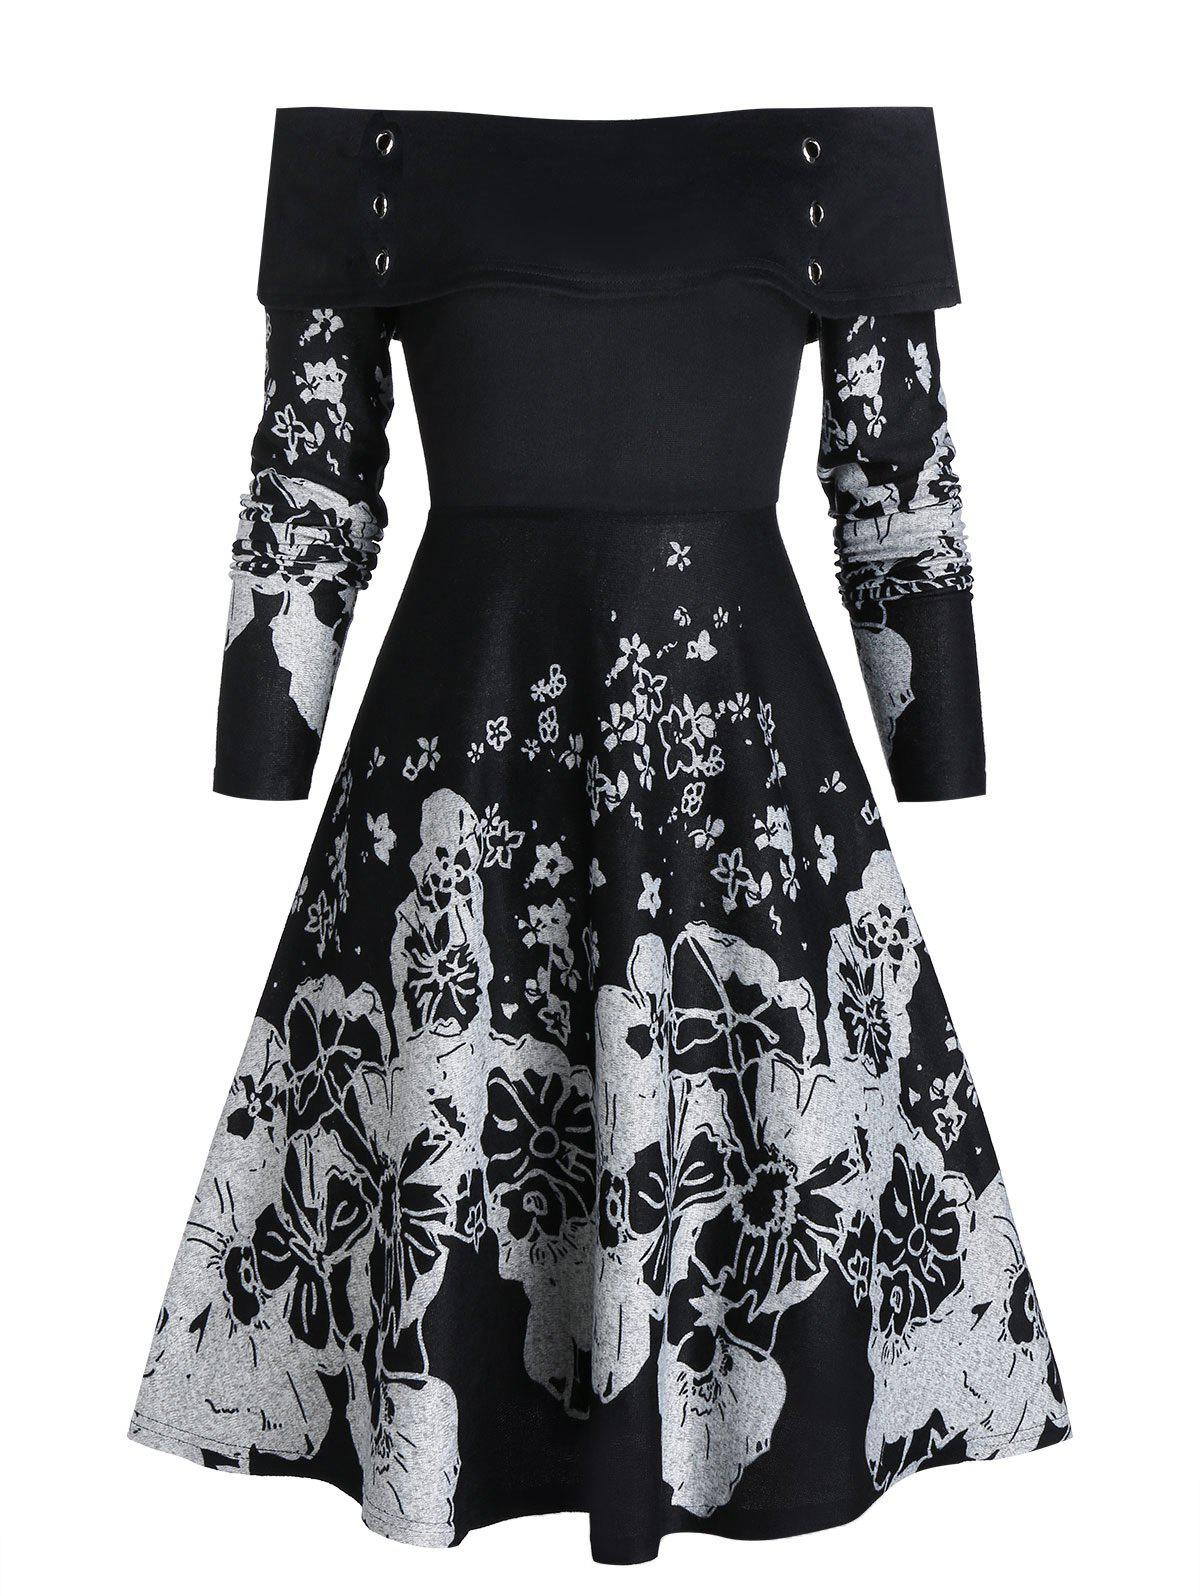 Best Off The Shoulder High Waist Fit And Flare Dress